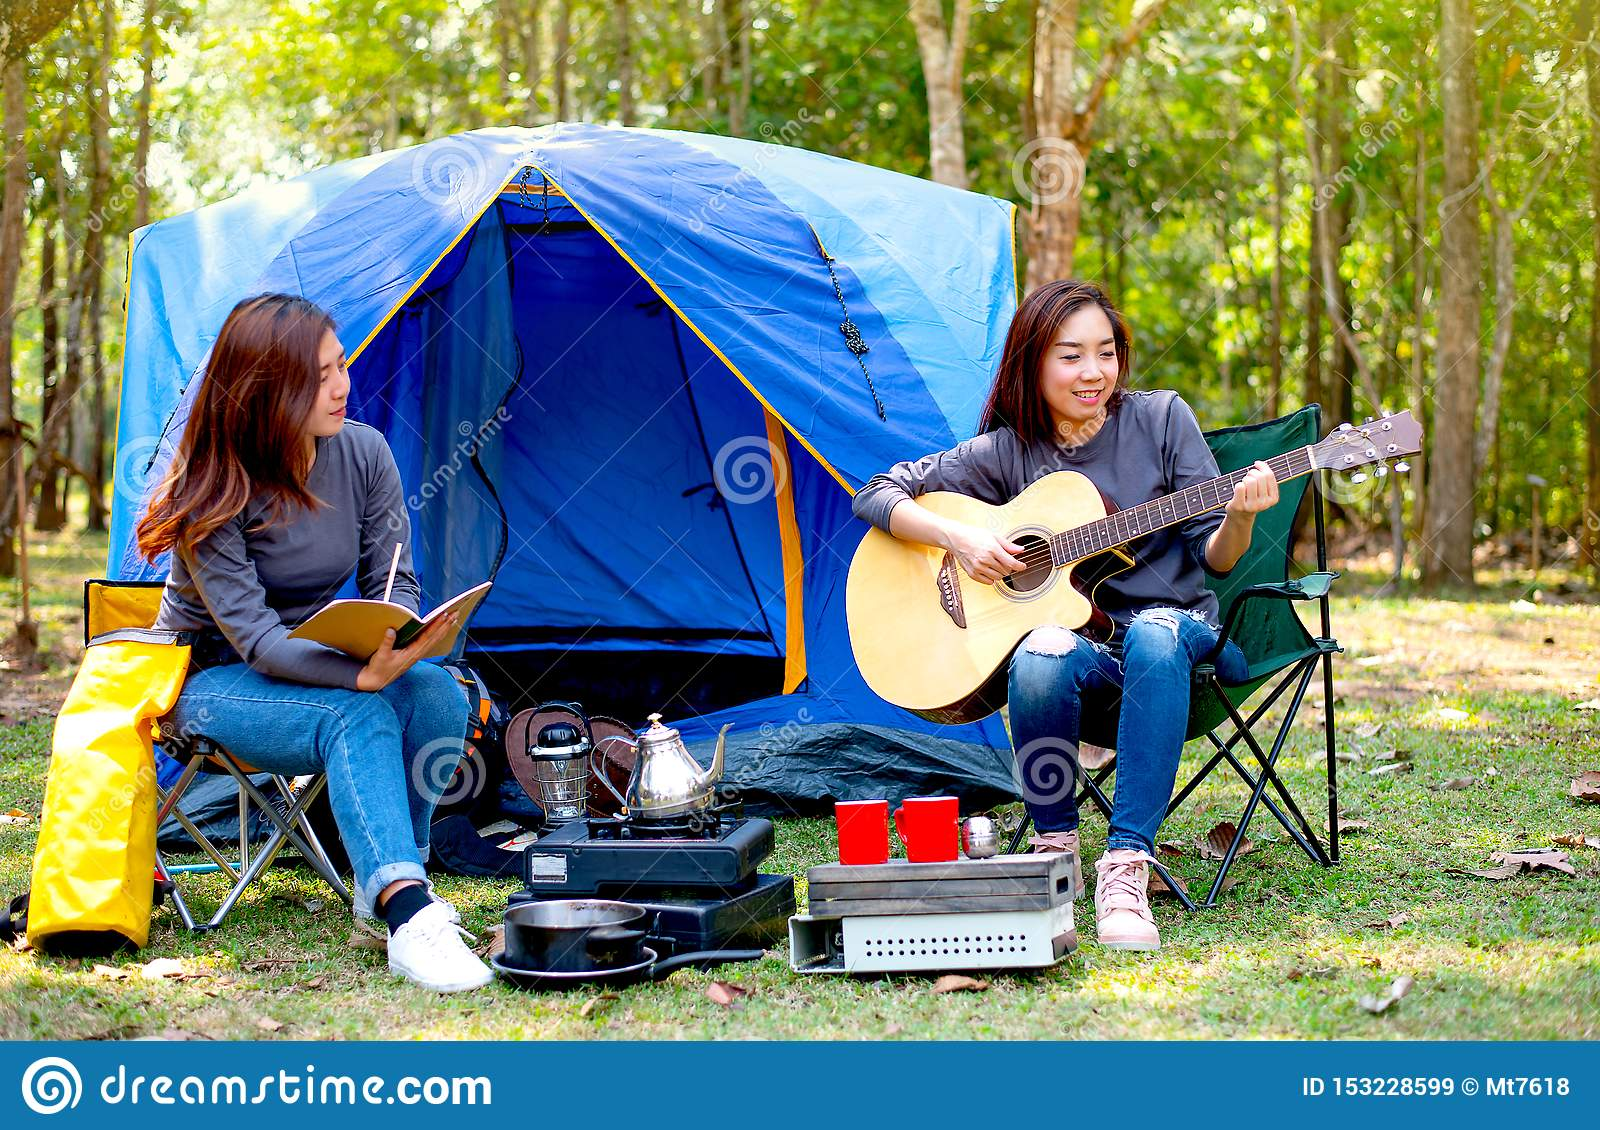 One woman play the guitar while the other one records something during the camping in forest and look like they feel fun and happy